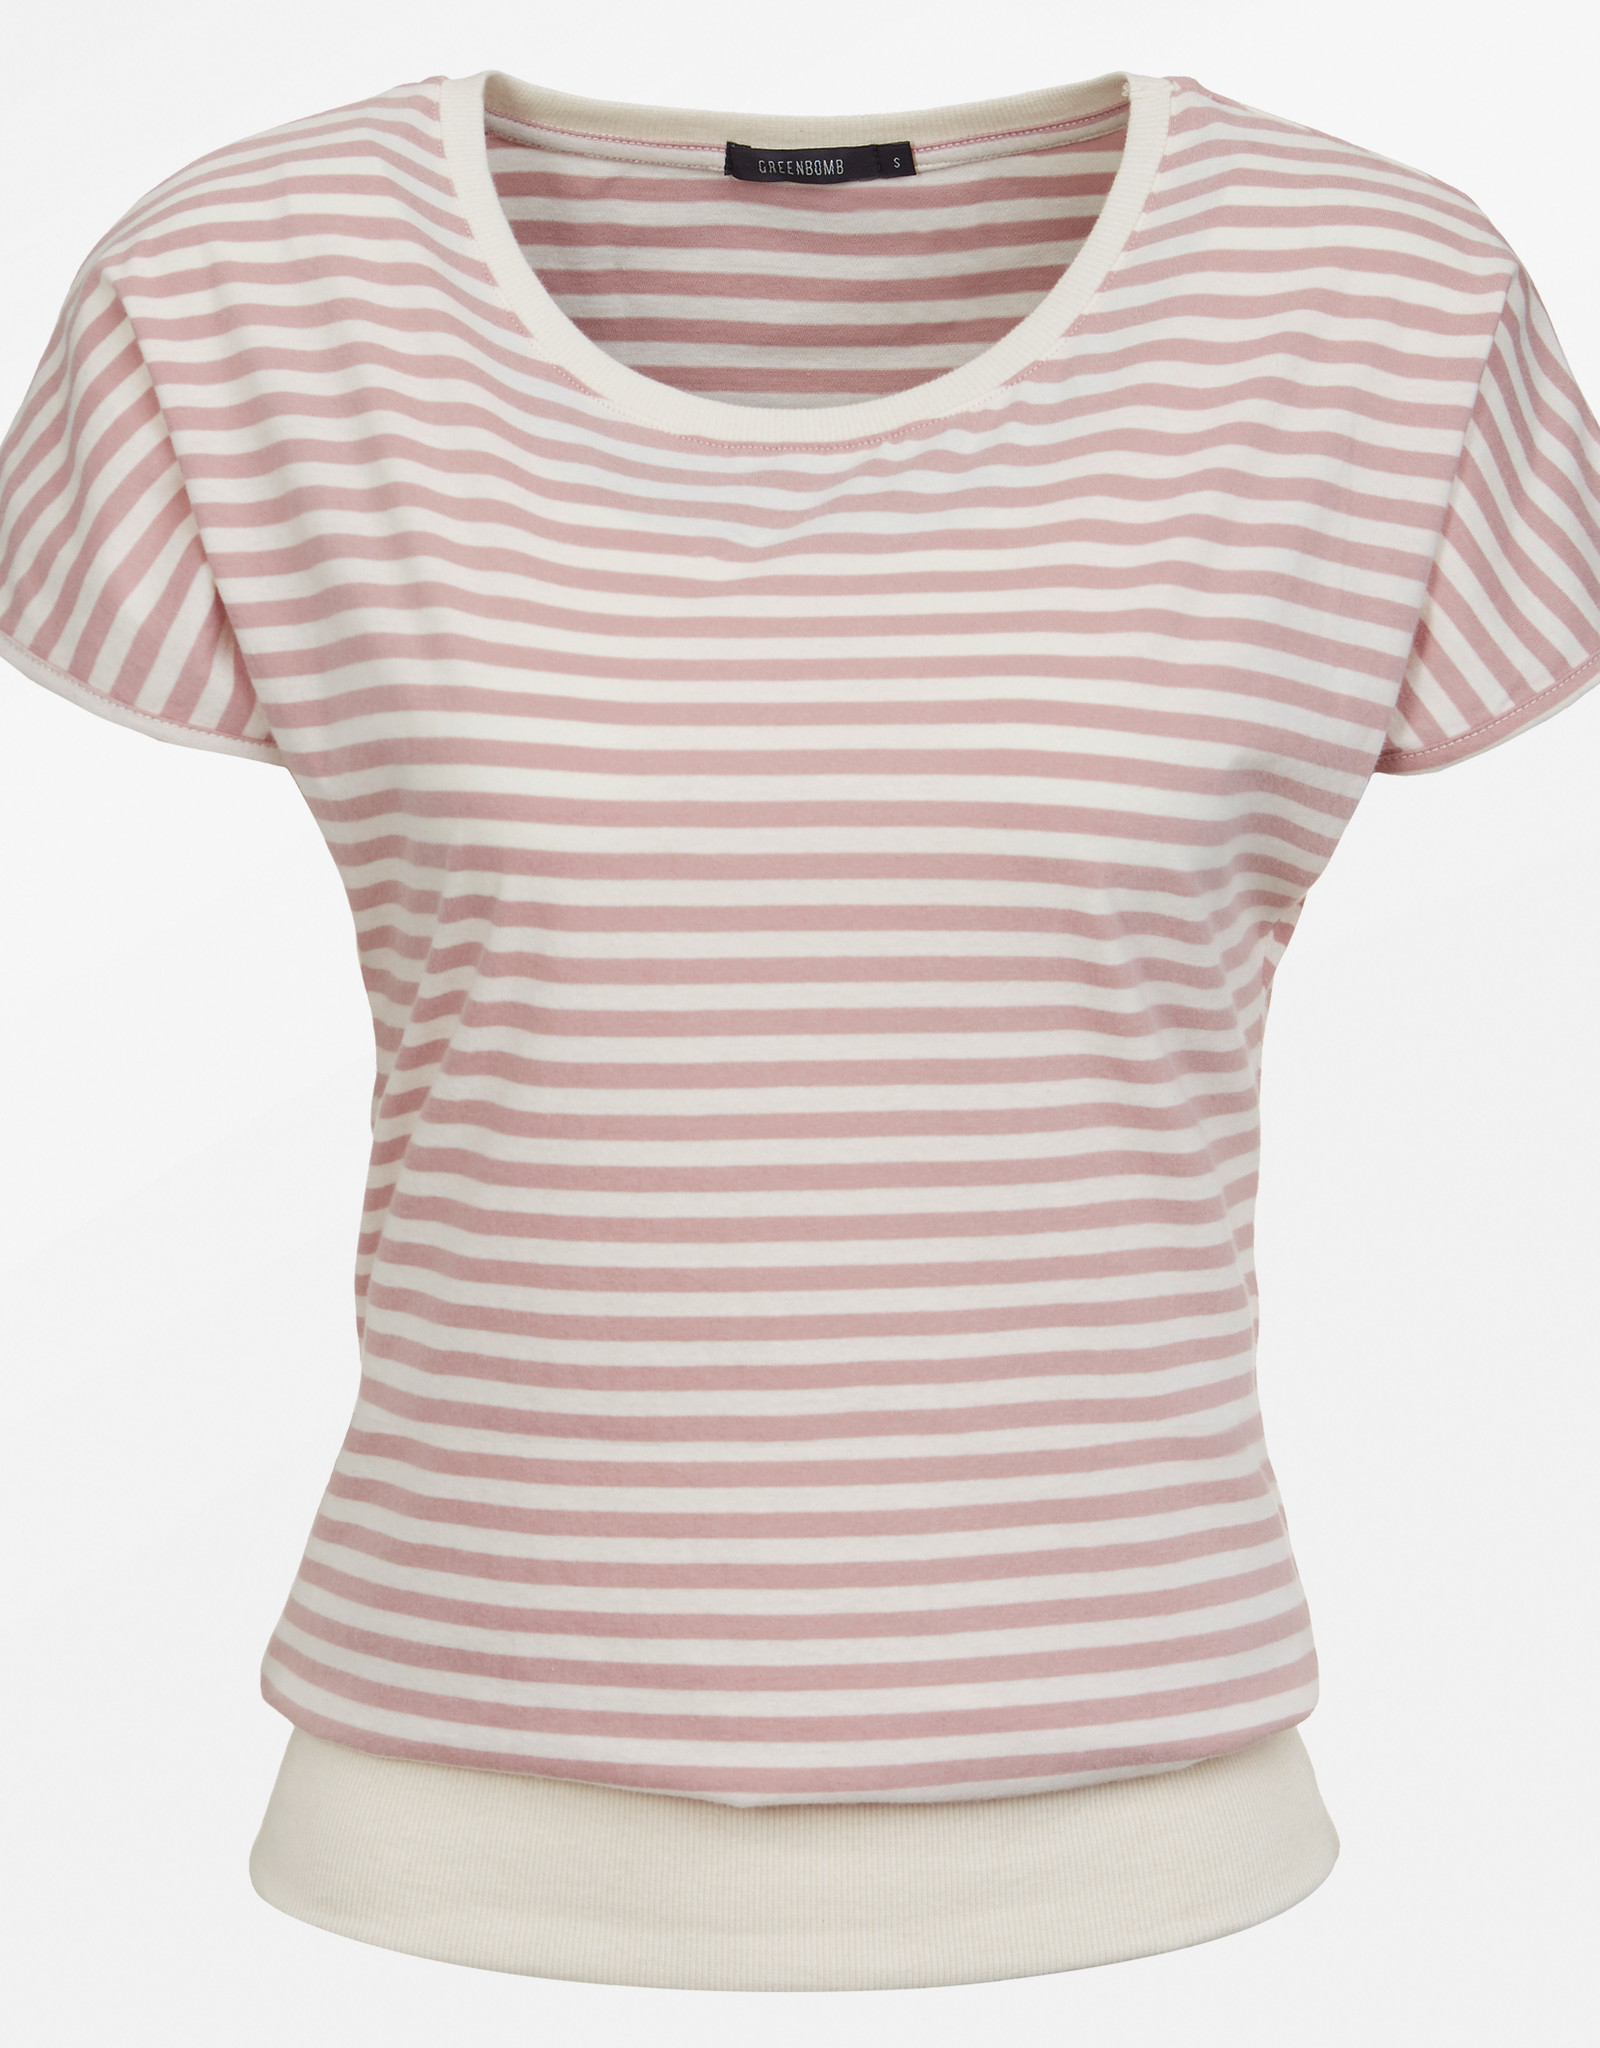 Greenbomb T-SHIRT ROSE STRIPES